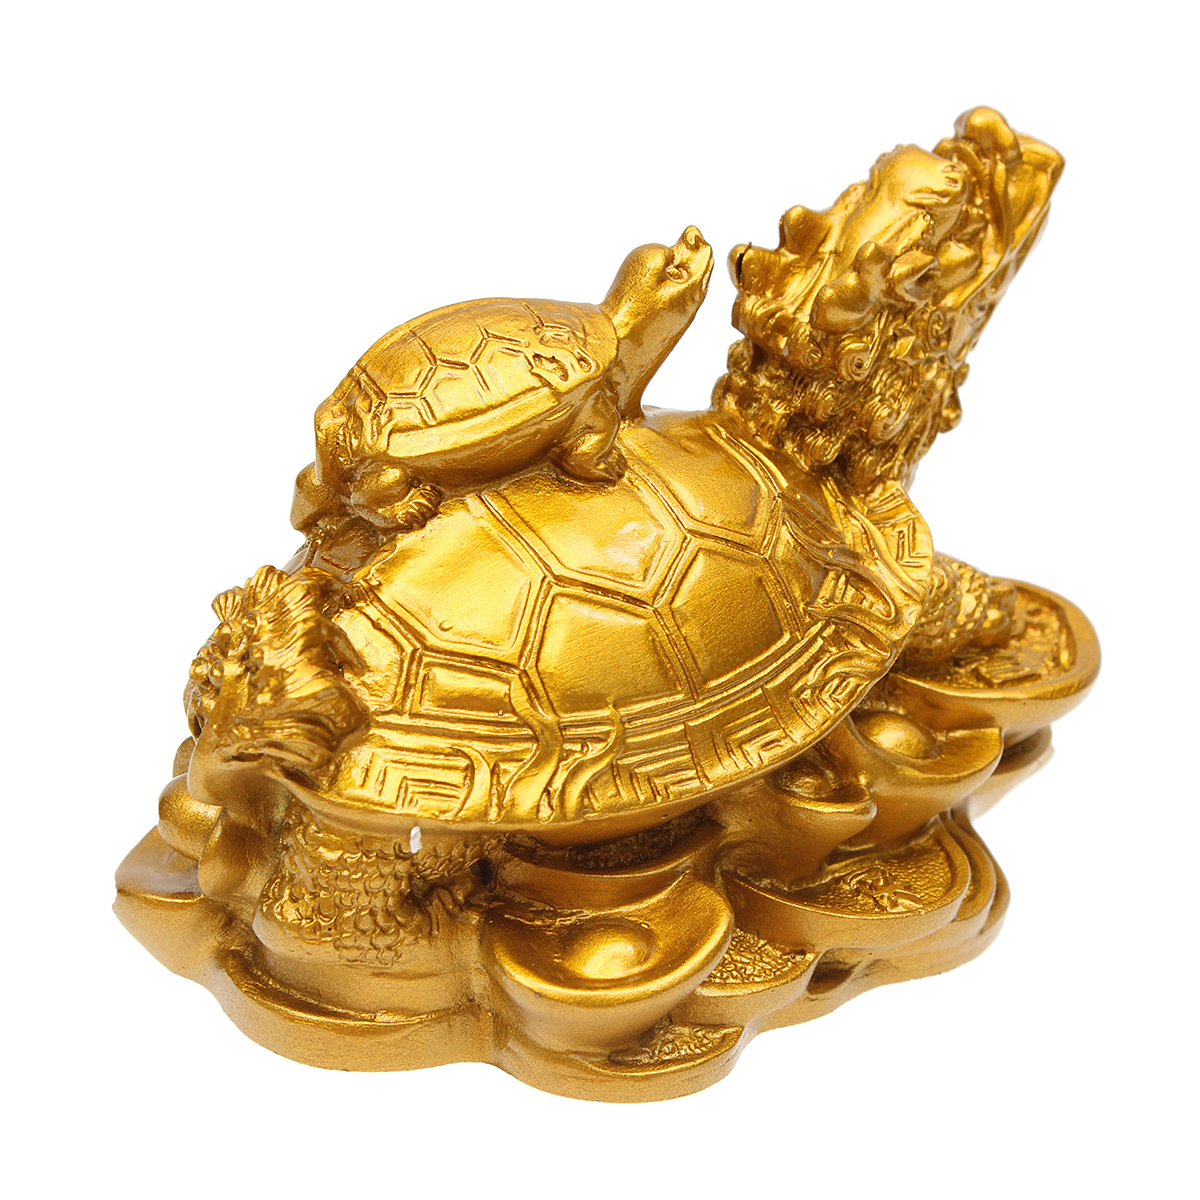 Resin Statue Decoration Feng Shui Dragon Turtle Tortoise Gold Coin Money Wealth Figurine